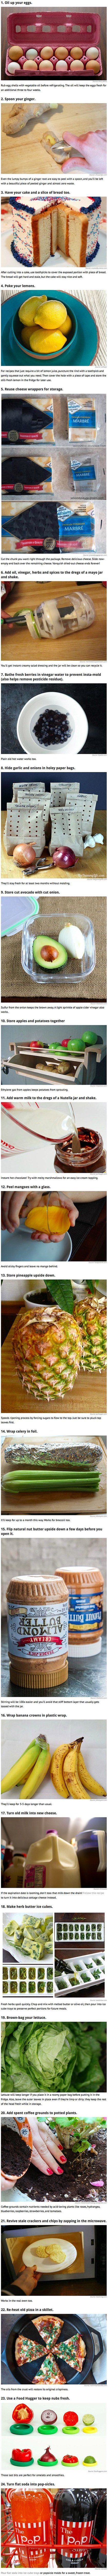 Useful kitchen life hacks and tips that food geeks would love. http://weathertightroofinginc.com